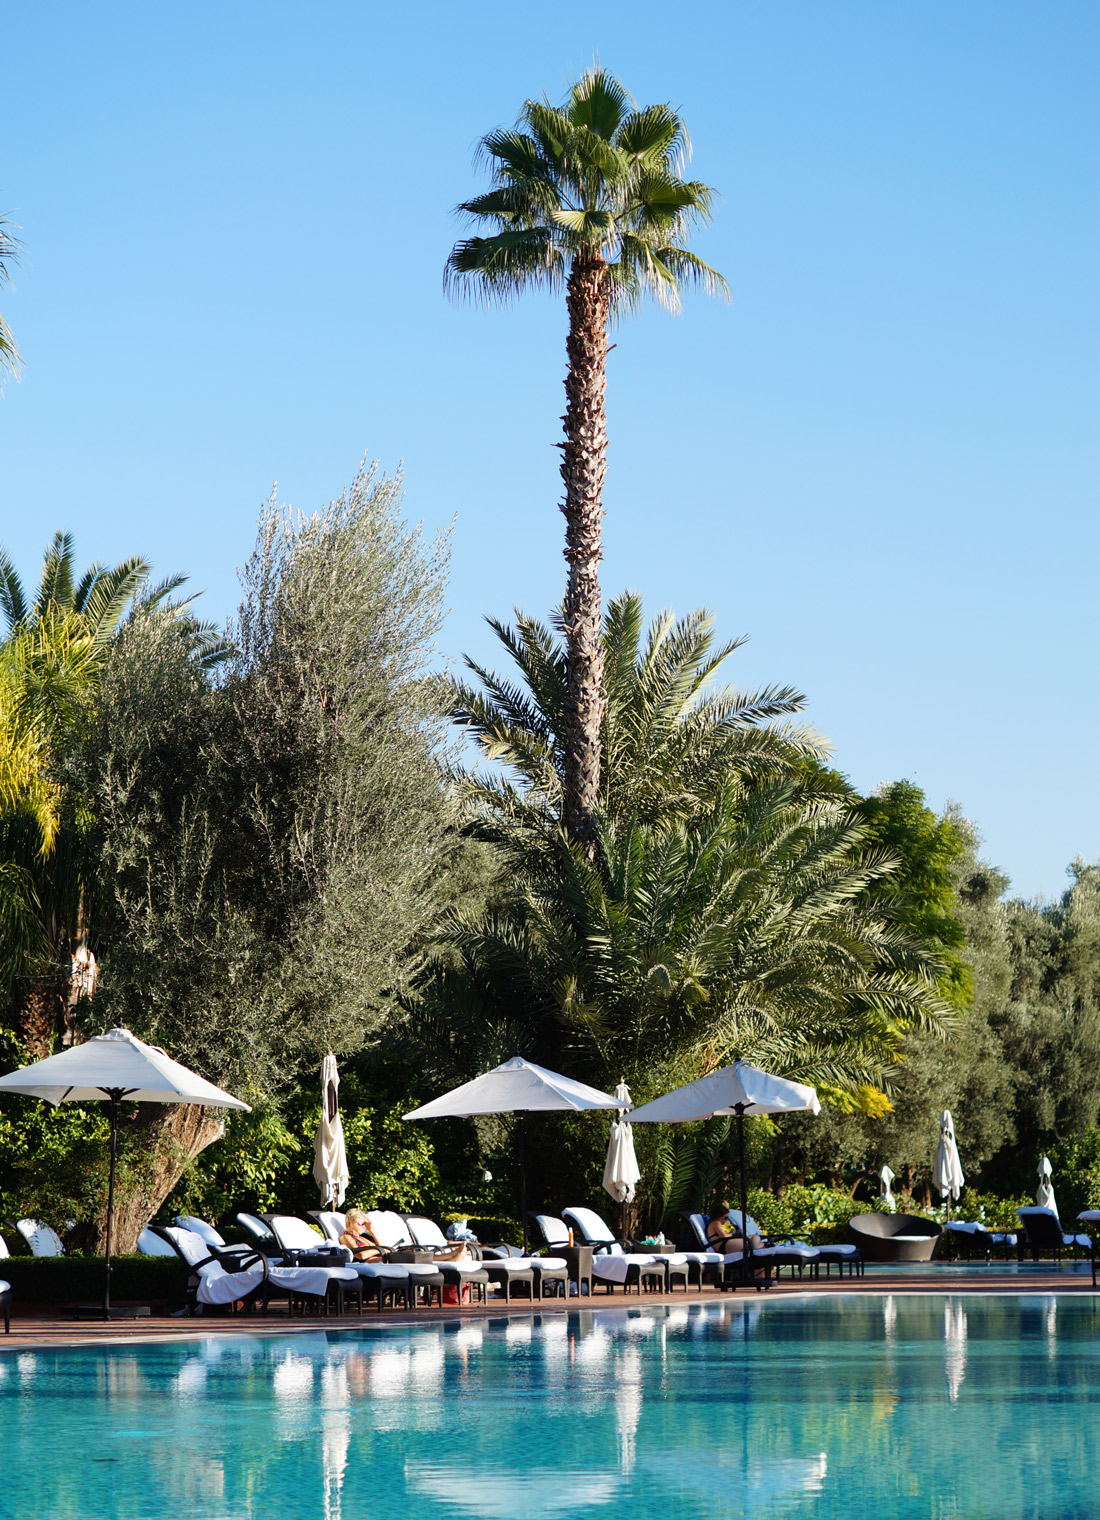 Bag-at-You---Fashion-blog---La-Mamounia-Hotel-Marrakesh---Pool-palms